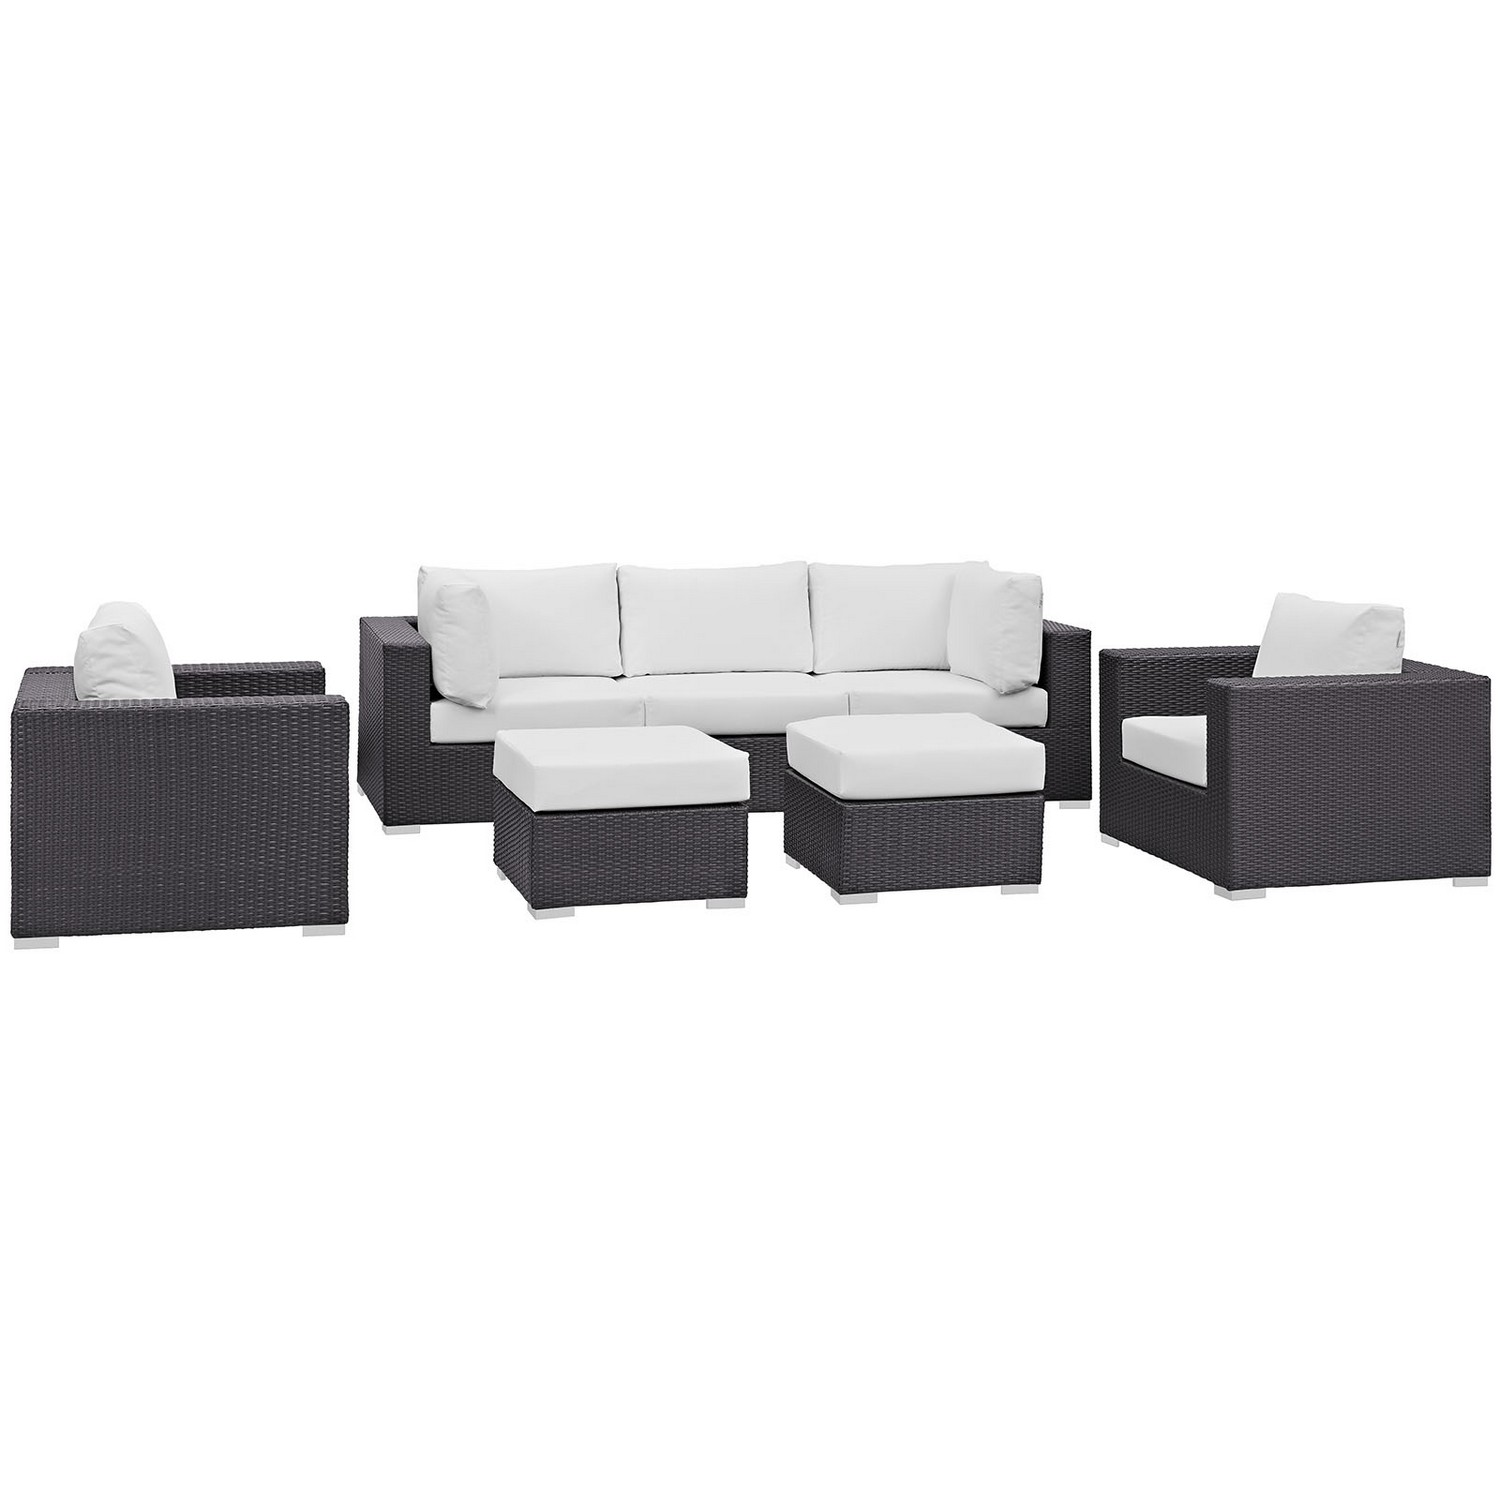 Modway Convene 7 Piece Outdoor Patio Sectional Set - Espresso White